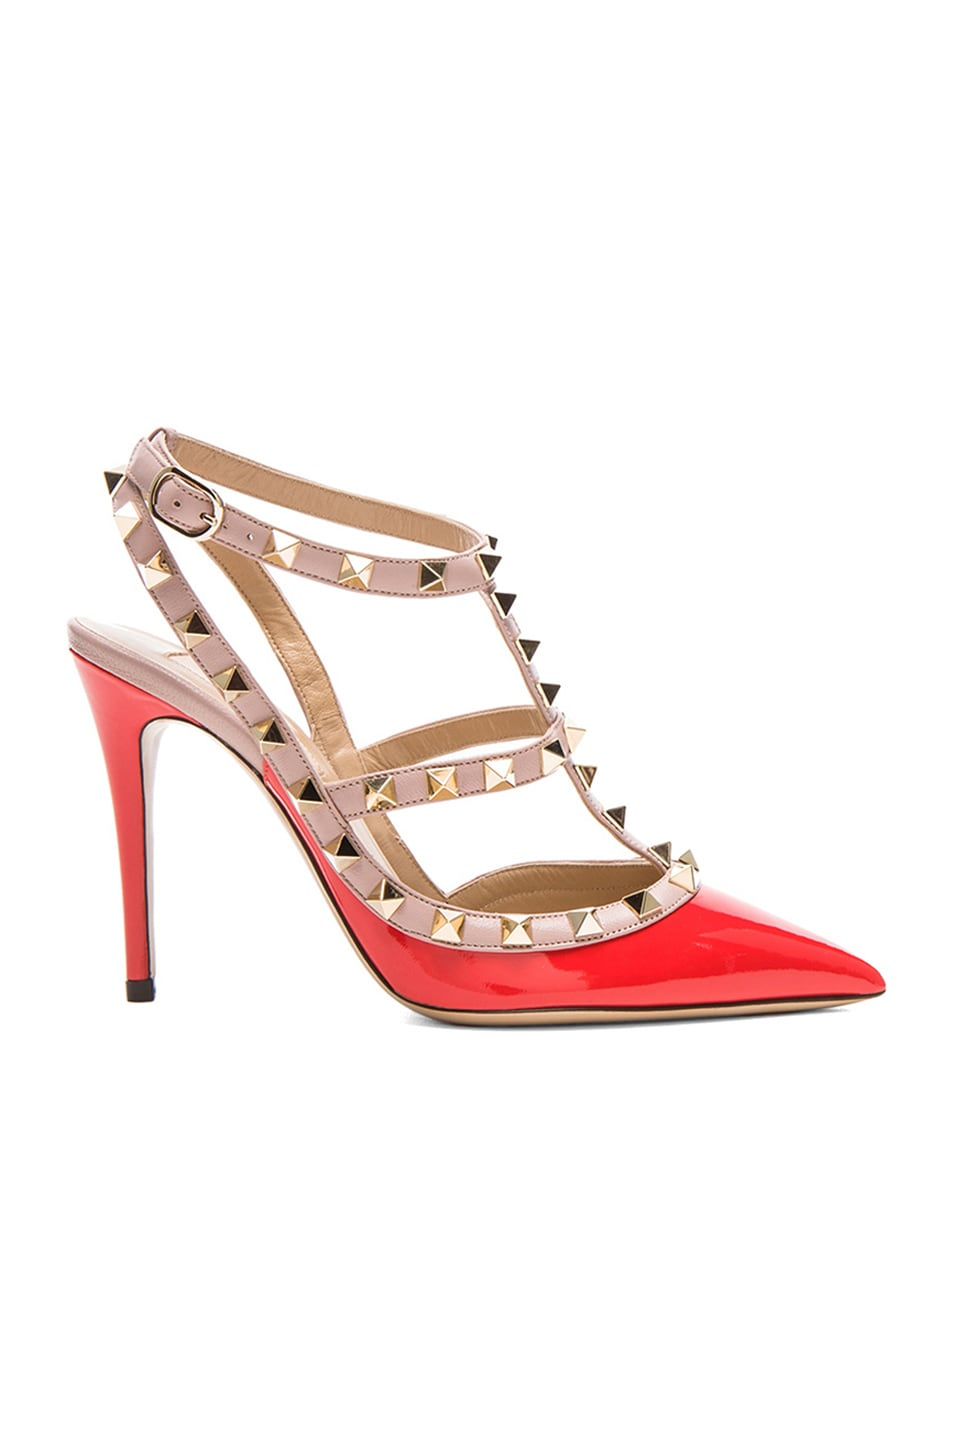 Image 1 of Valentino Rockstud Patent Slingbacks T.100 in Orange